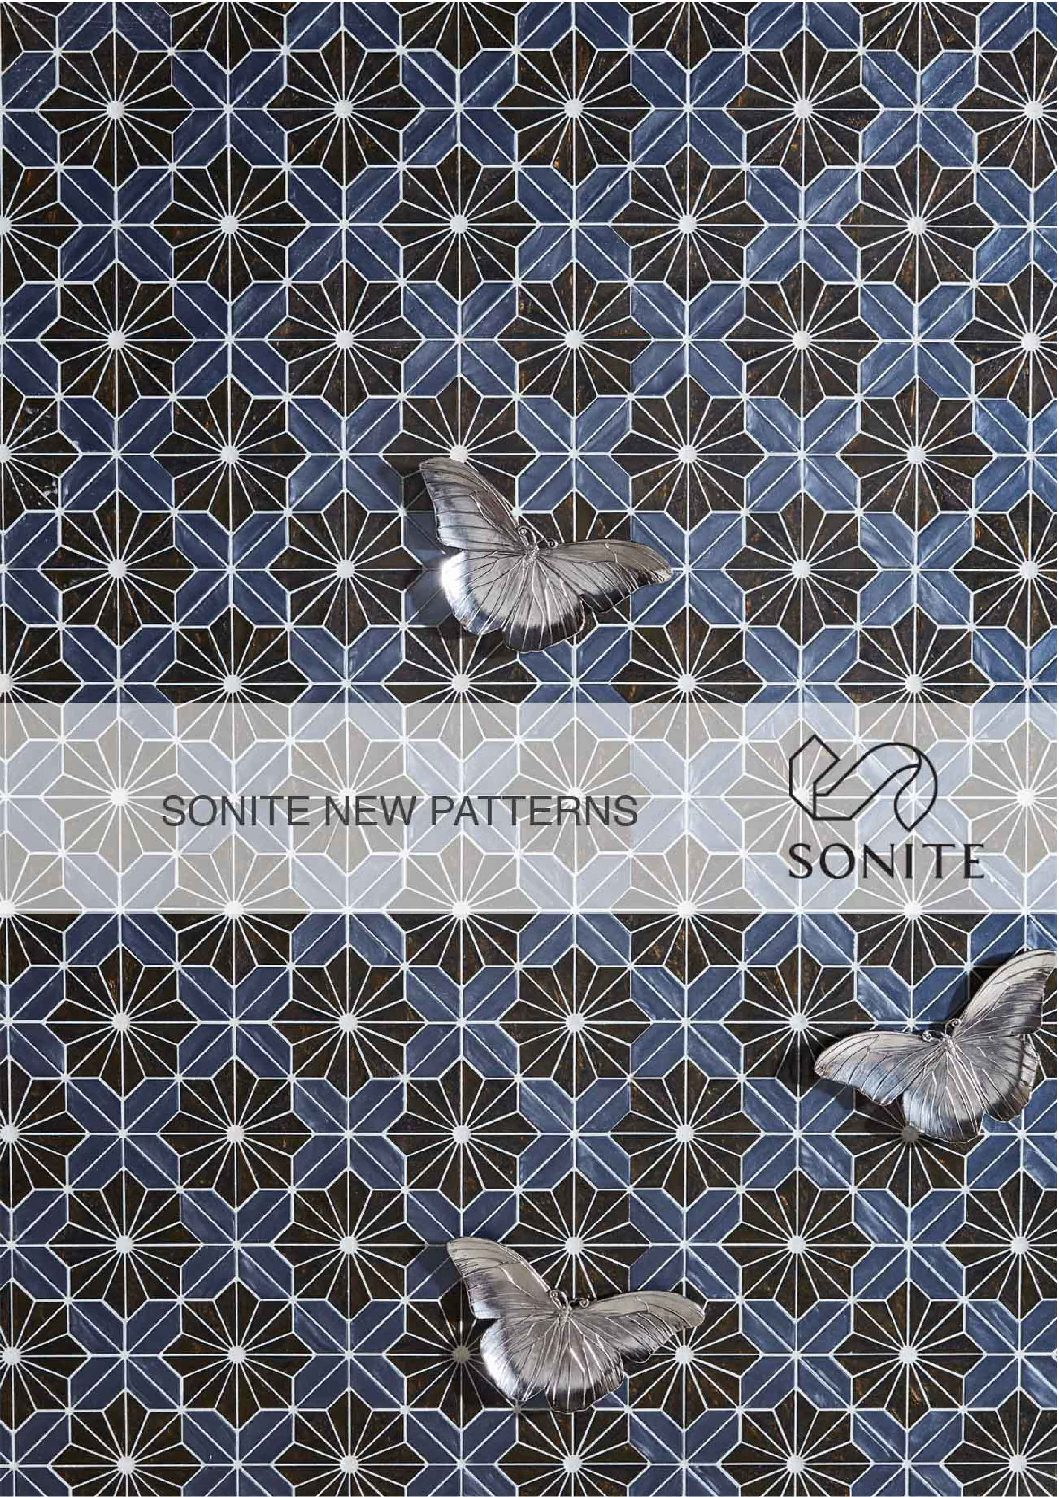 Sonite New Pattern